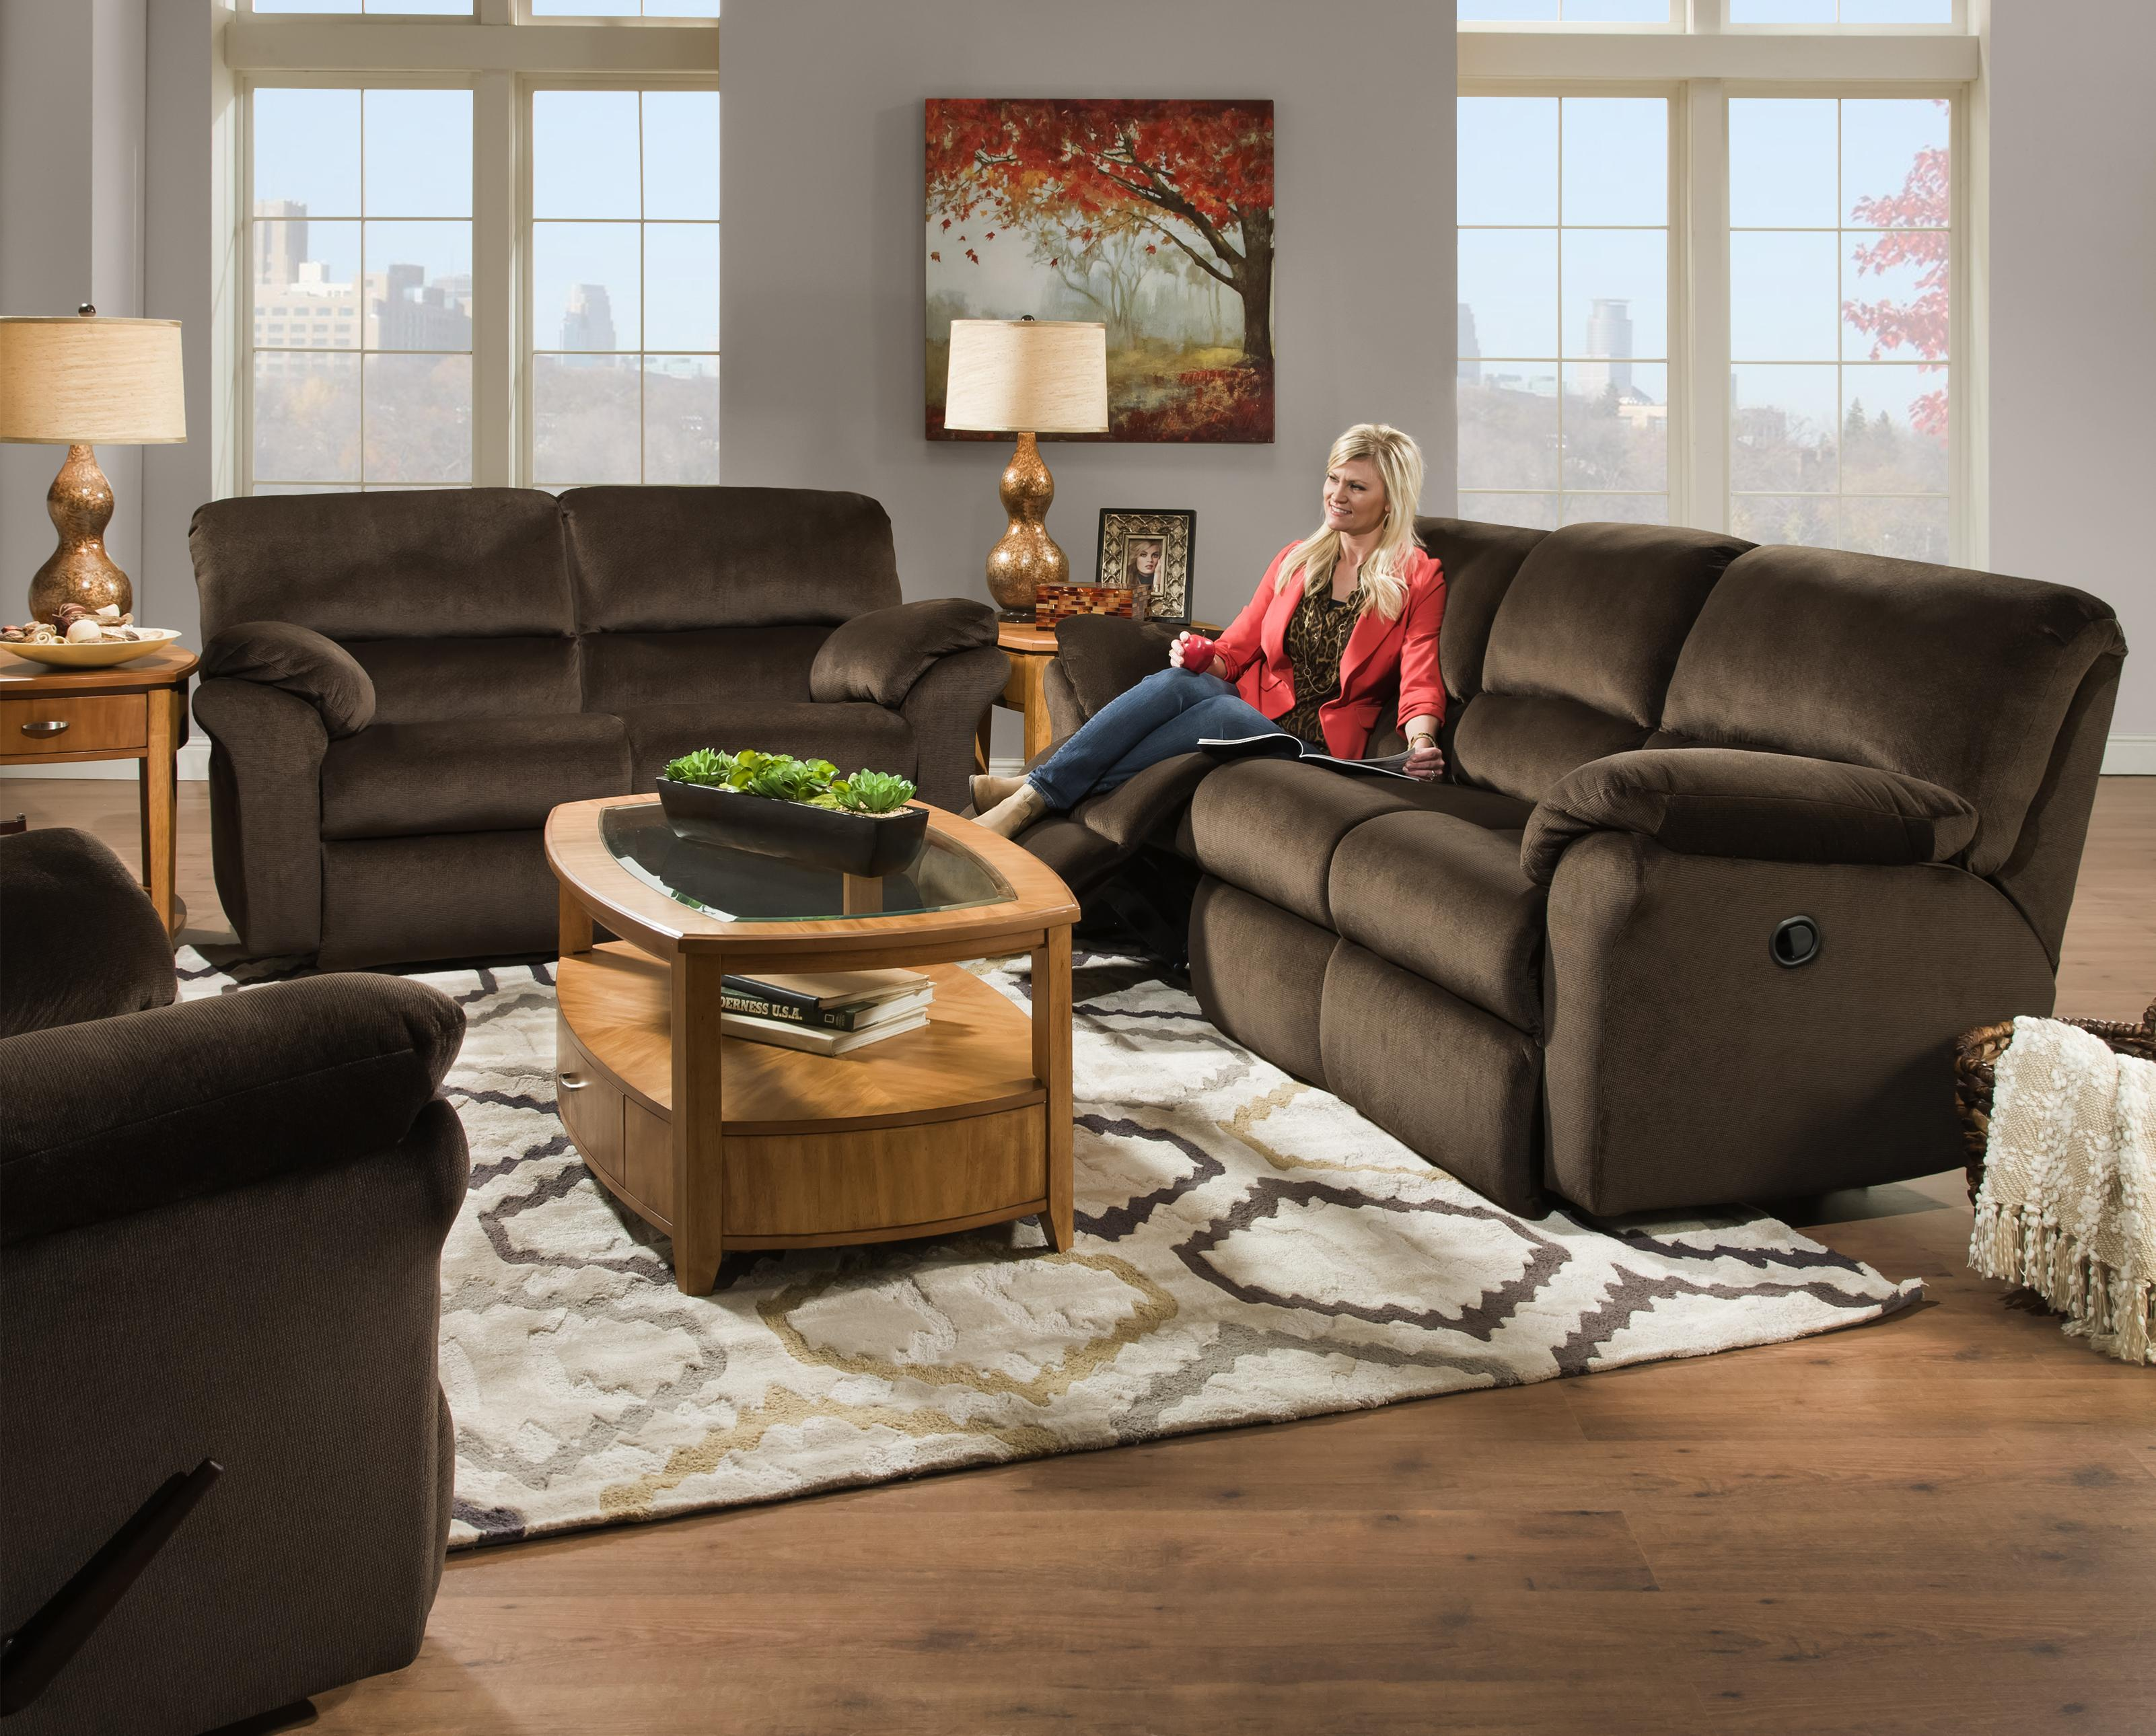 Southern Motion Cloud Nine Double Reclining Sofa with Casual Style - Wayside Furniture - Reclining Sofa & Southern Motion Cloud Nine Double Reclining Sofa with Casual Style ... islam-shia.org